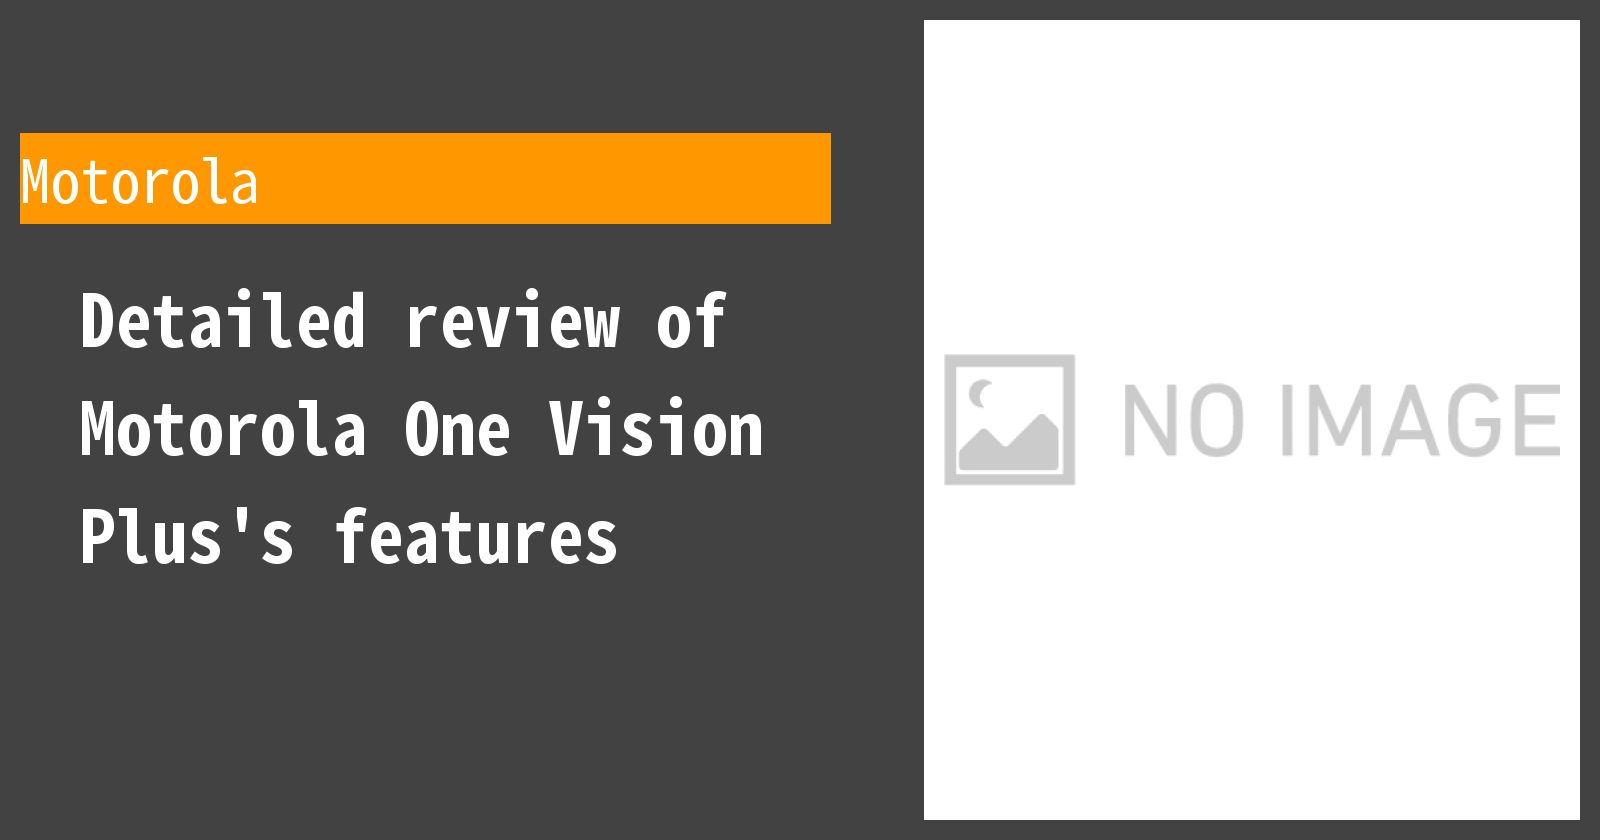 Detailed review of Motorola One Vision Plus's features